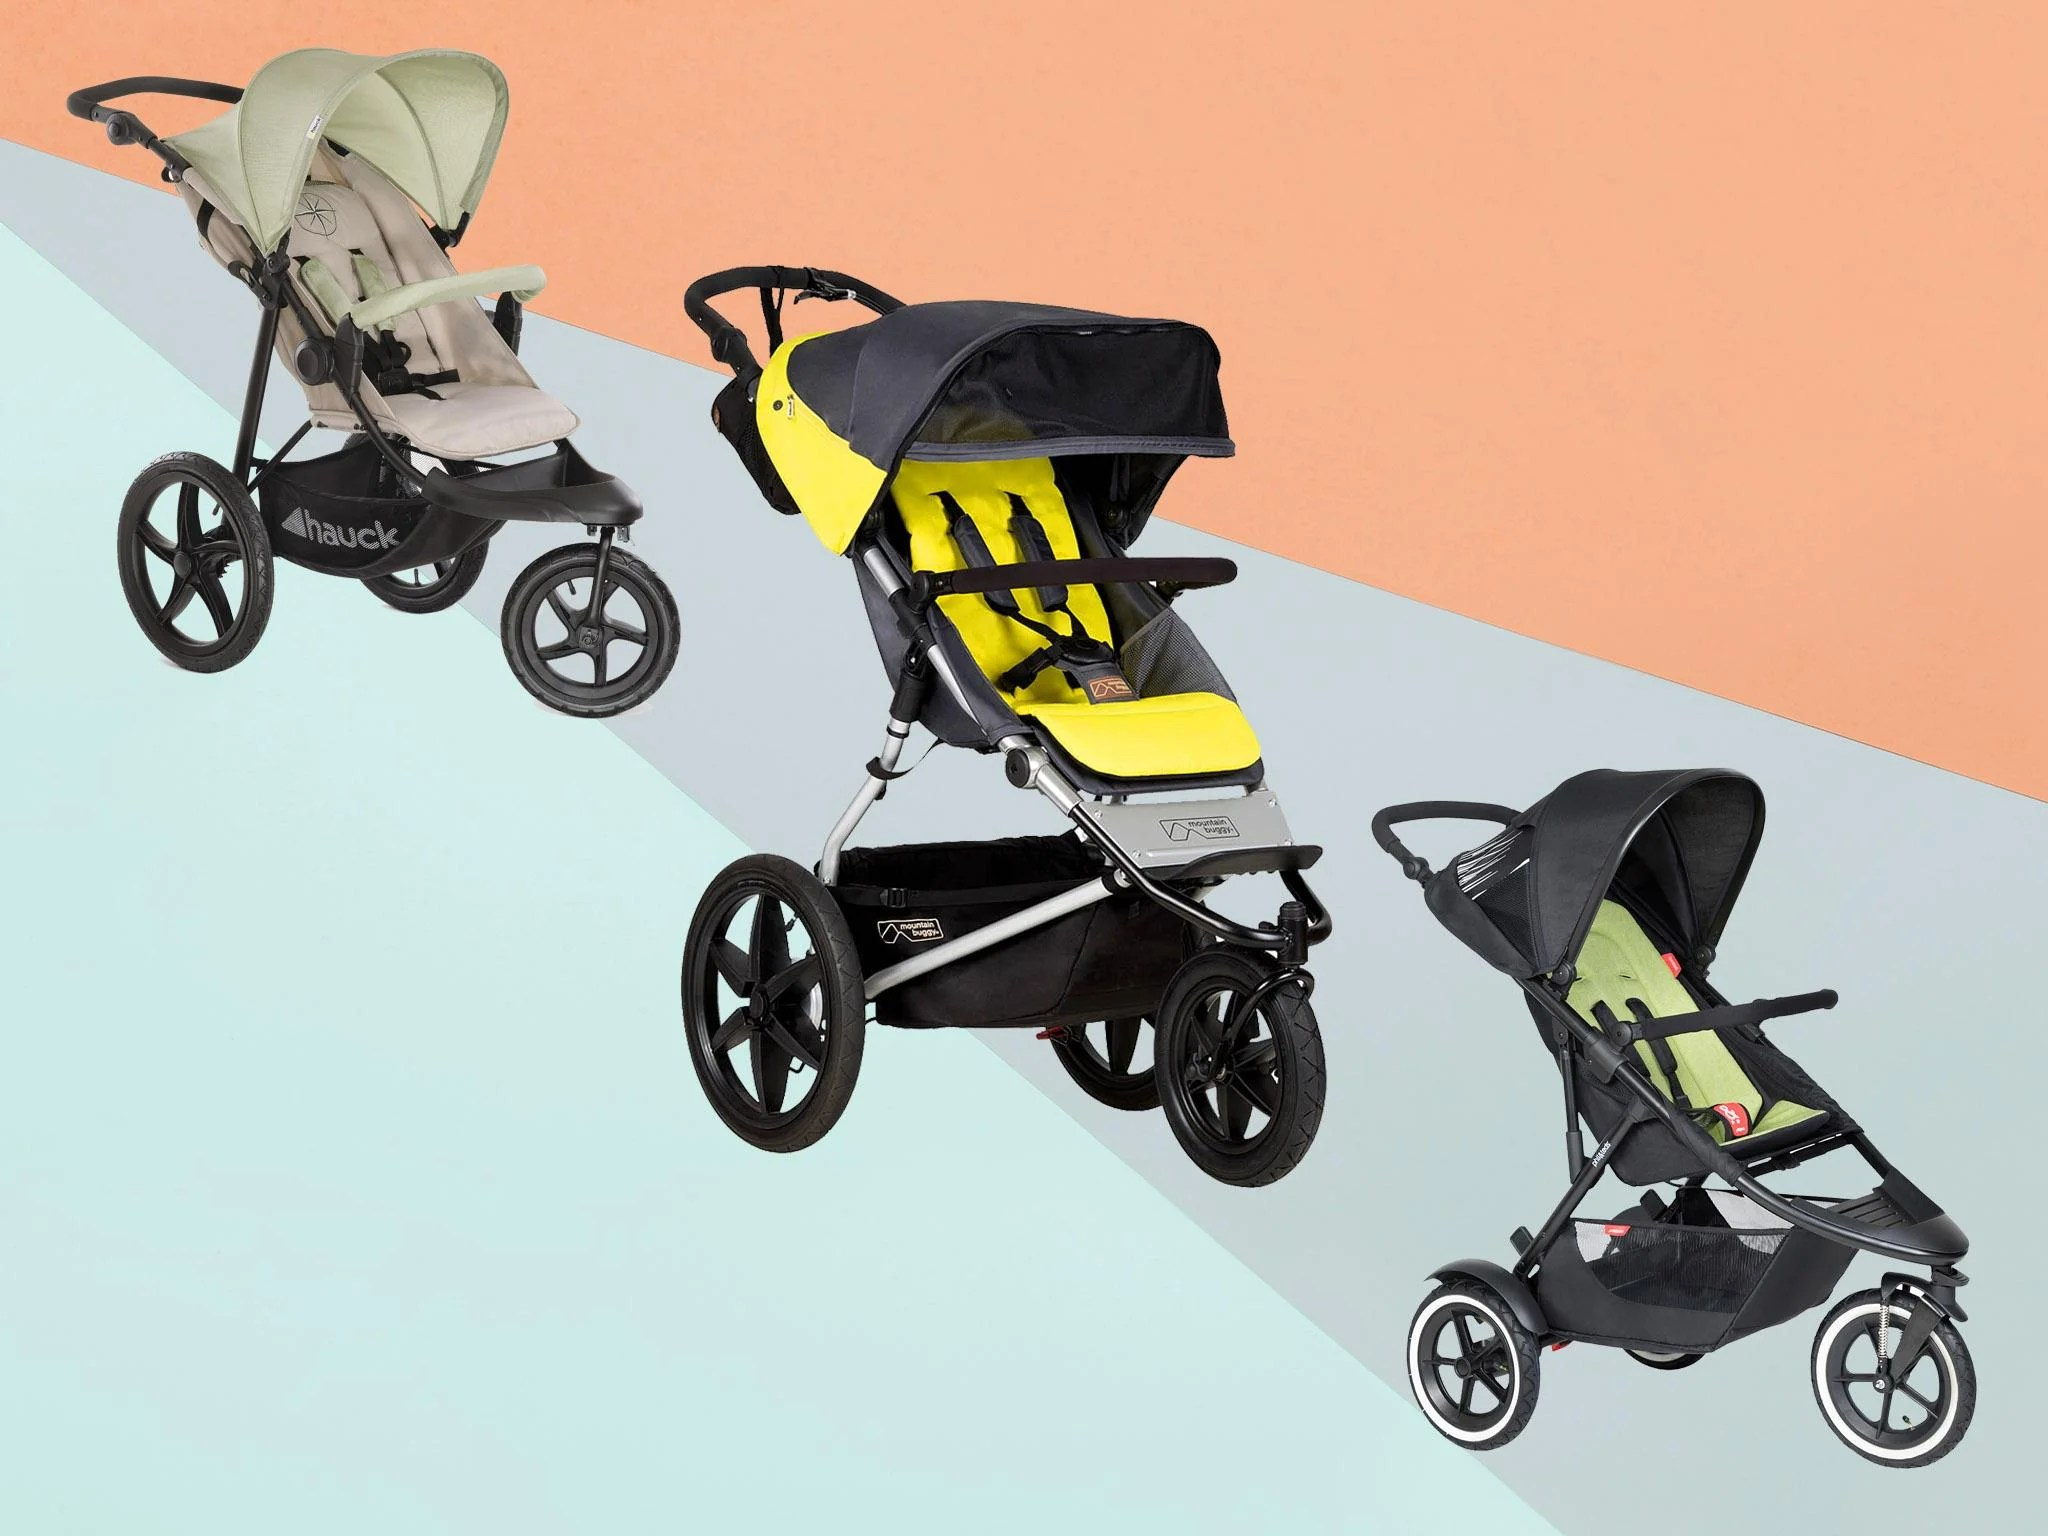 Stroller Car Race Best Jogging Stroller For Keeping Fit With Your Baby And Toddler